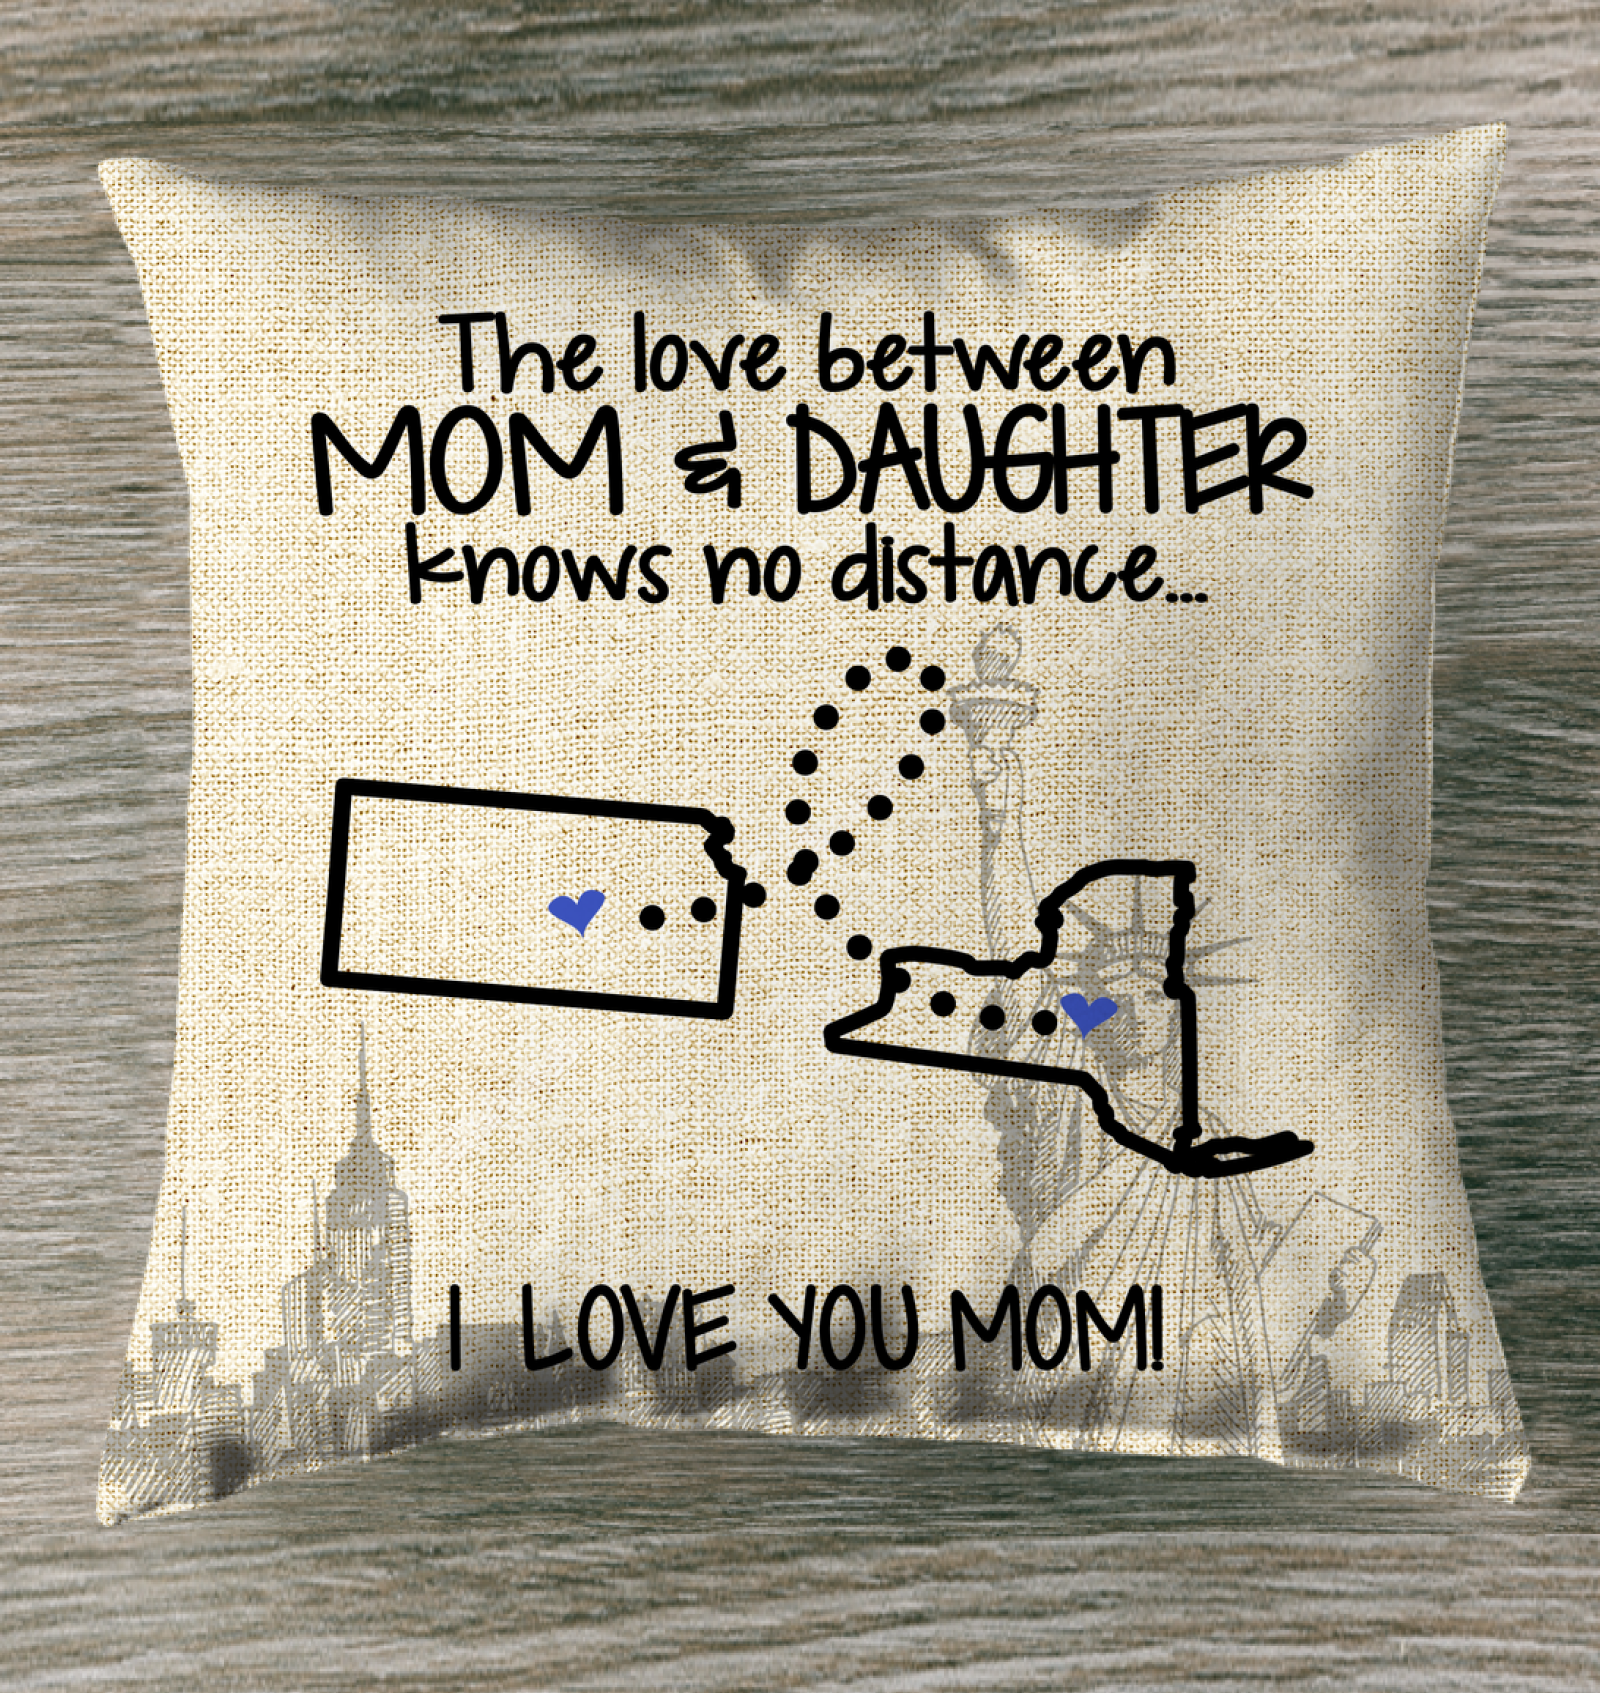 NEW YORK KANSAS THE LOVE MOM AND DAUGHTER KNOWS NO DISTANCE